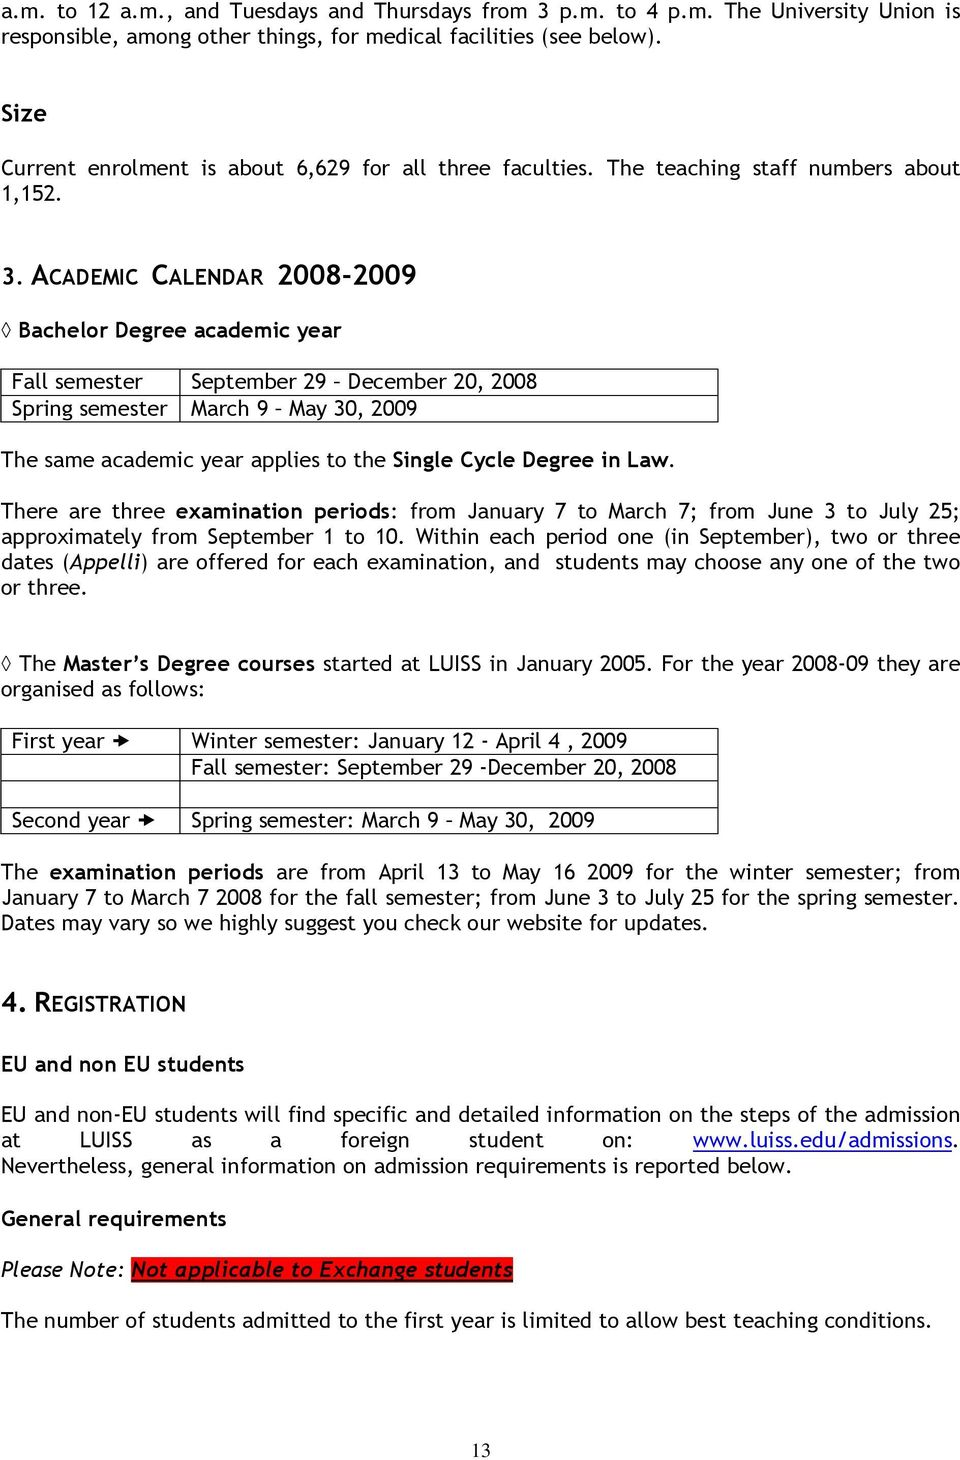 ACADEMIC CALENDAR 2008-2009 Bachelor Degree academic year Fall semester September 29 December 20, 2008 Spring semester March 9 May 30, 2009 The same academic year applies to the Single Cycle Degree